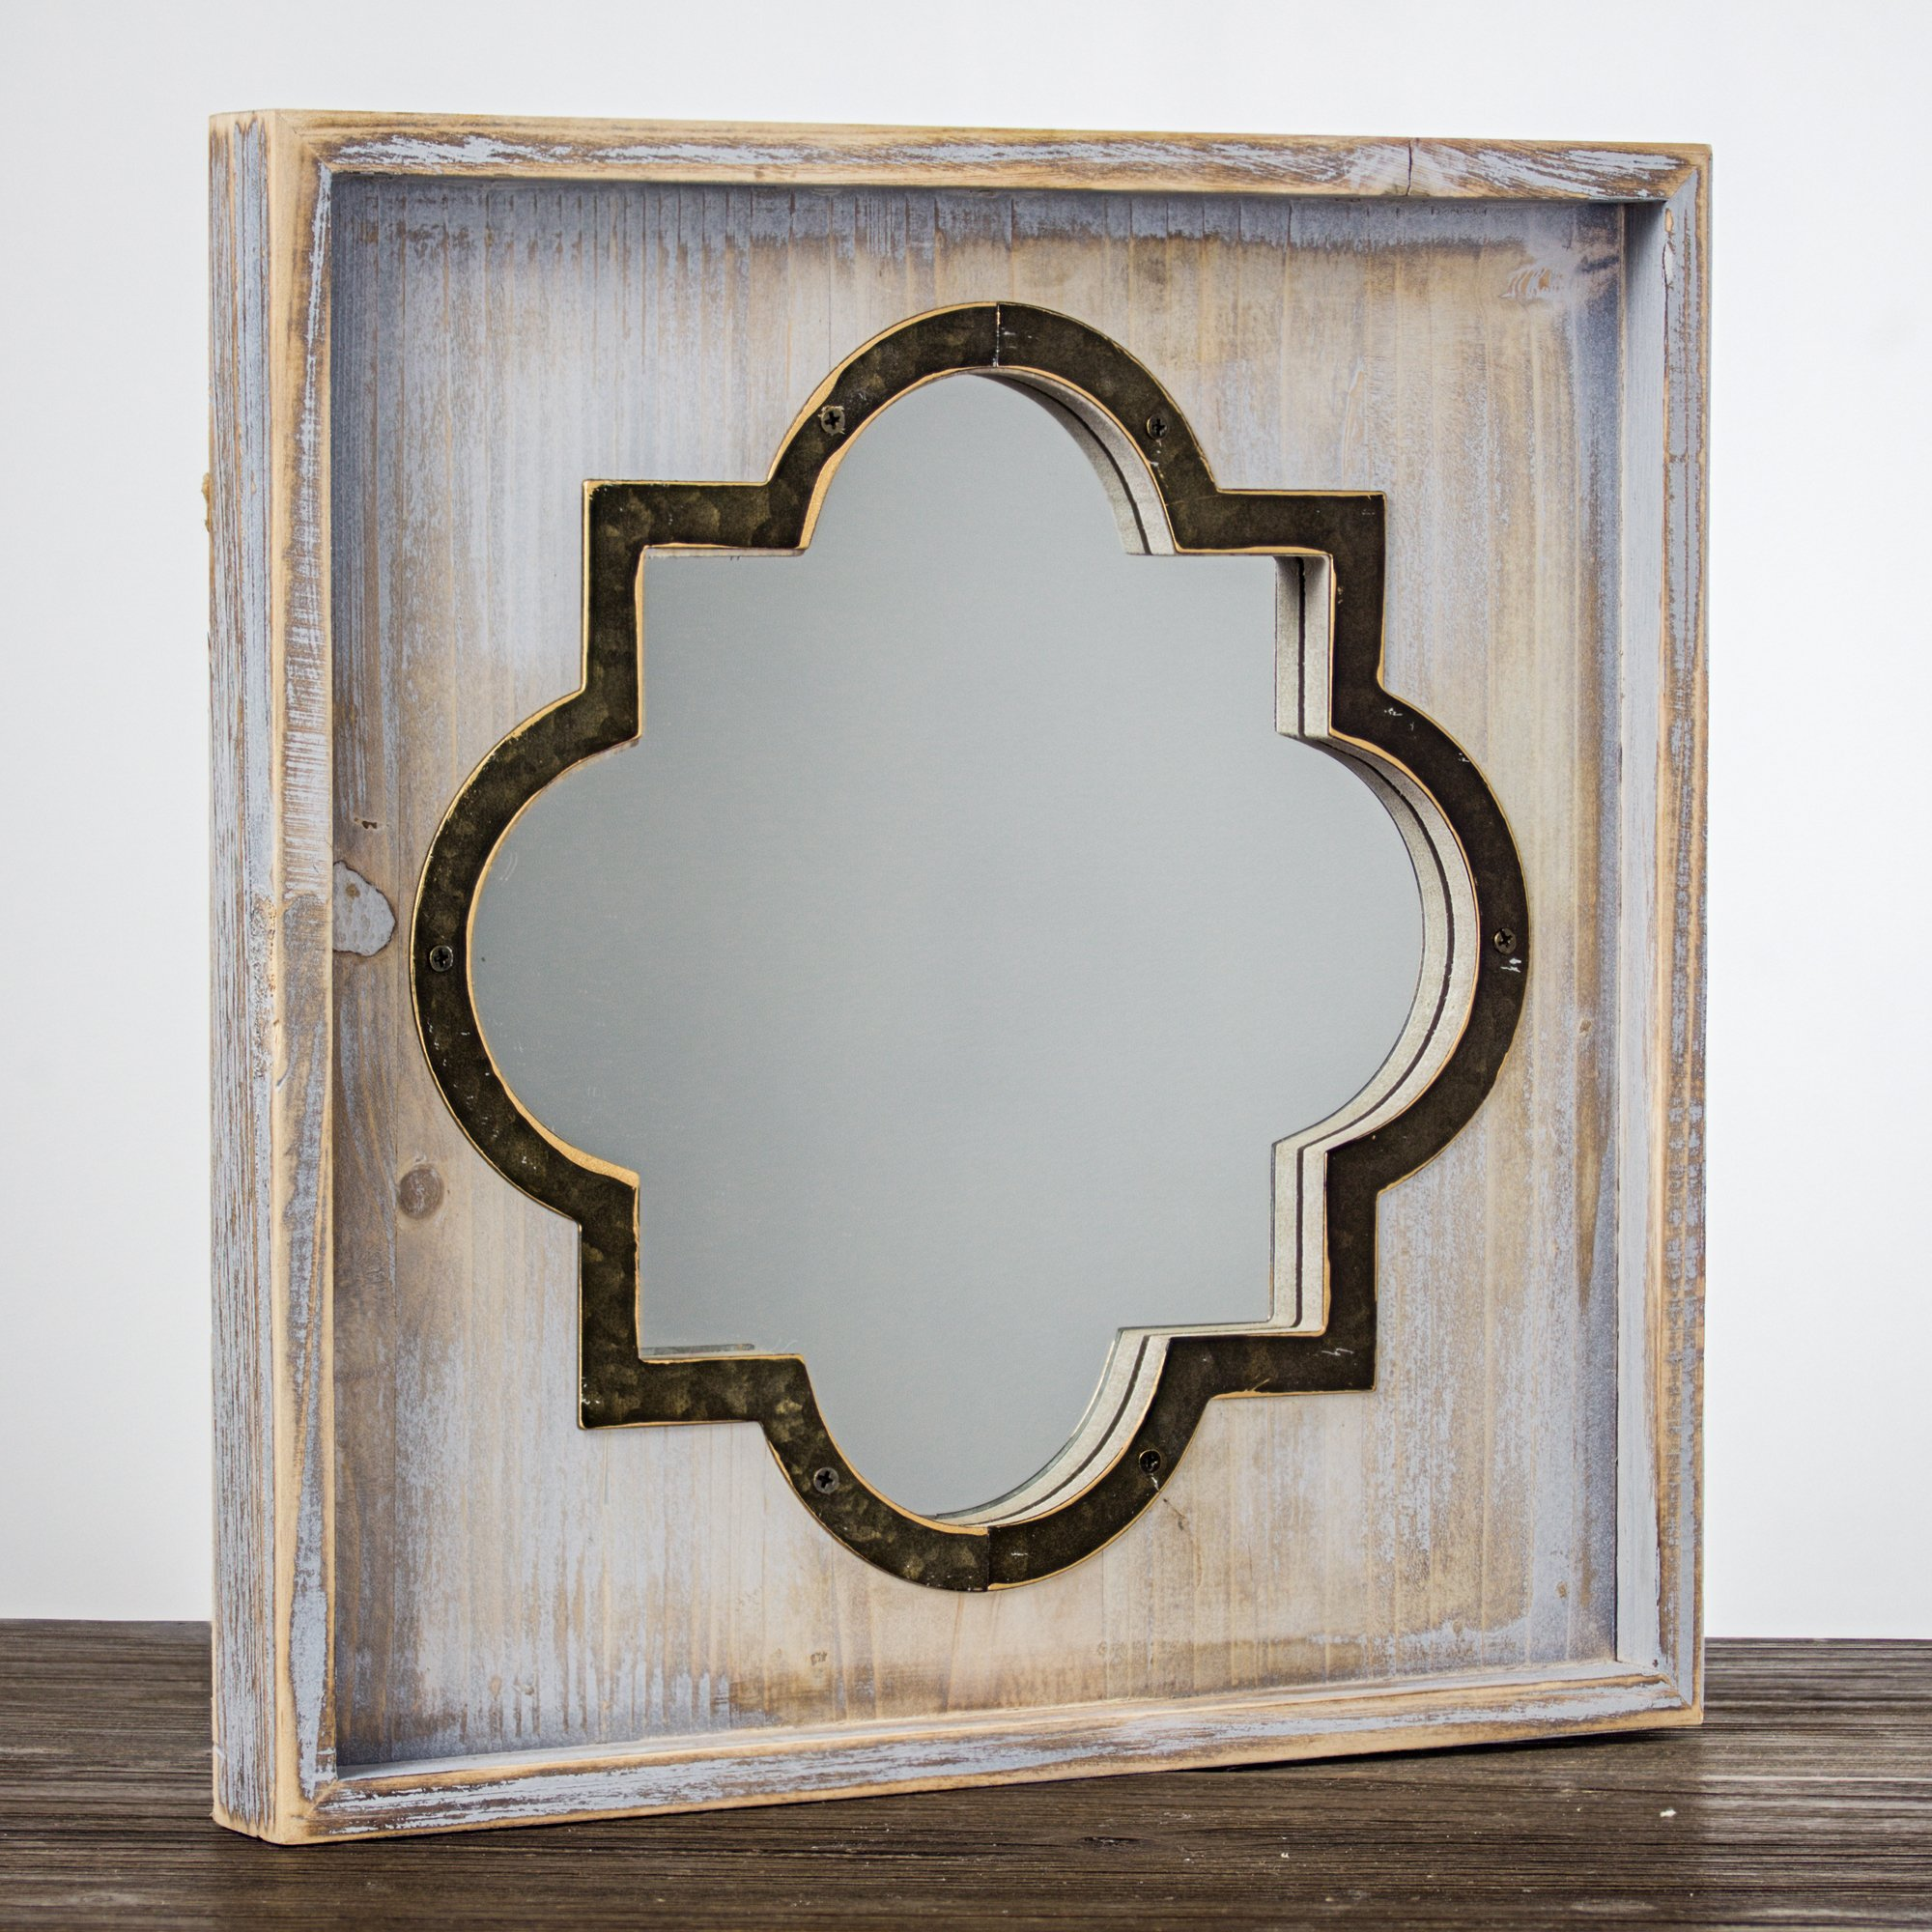 Crystal Art Whitewashed Rustic Wood & Metal Vanity Mirror (Square), Farmhouse Wall Décor, Multicolor by Crystal Art (Image #5)